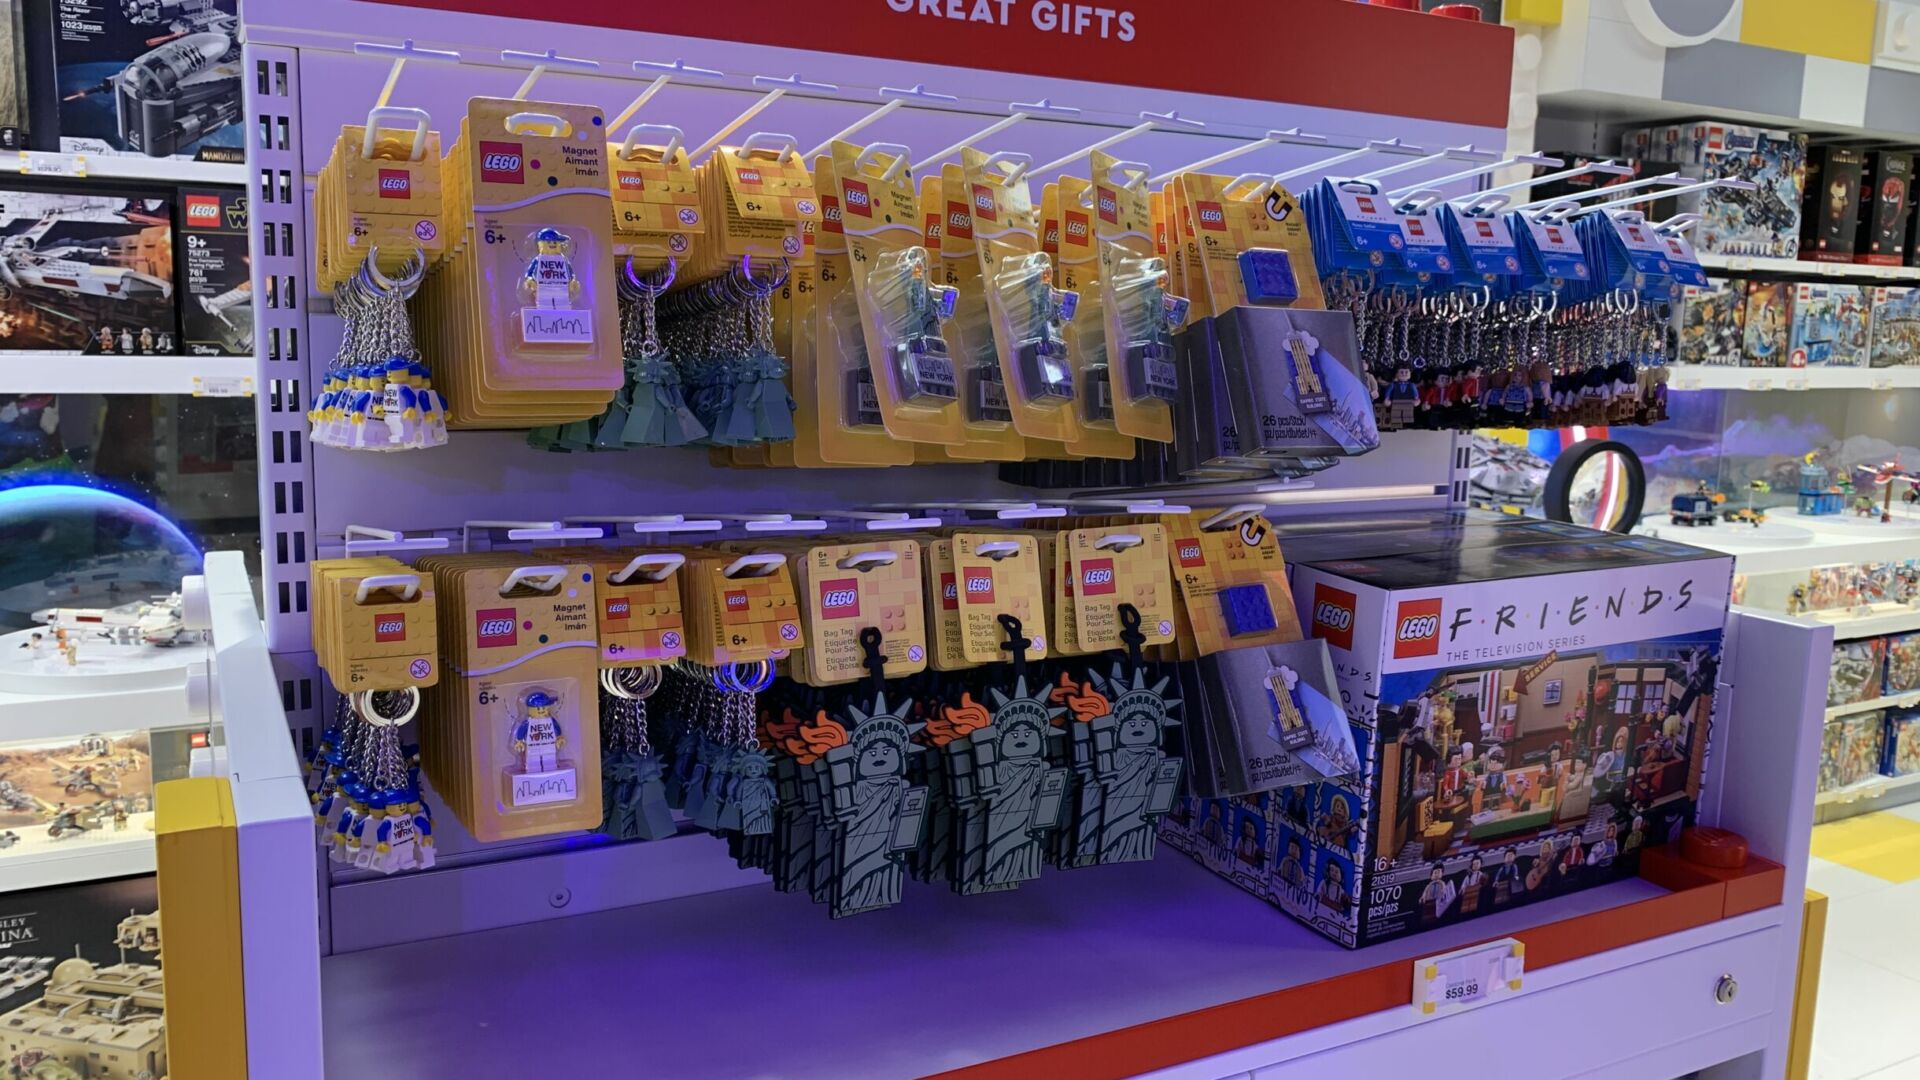 Impulse items near the register include LEGO classics and location-specific offerings.